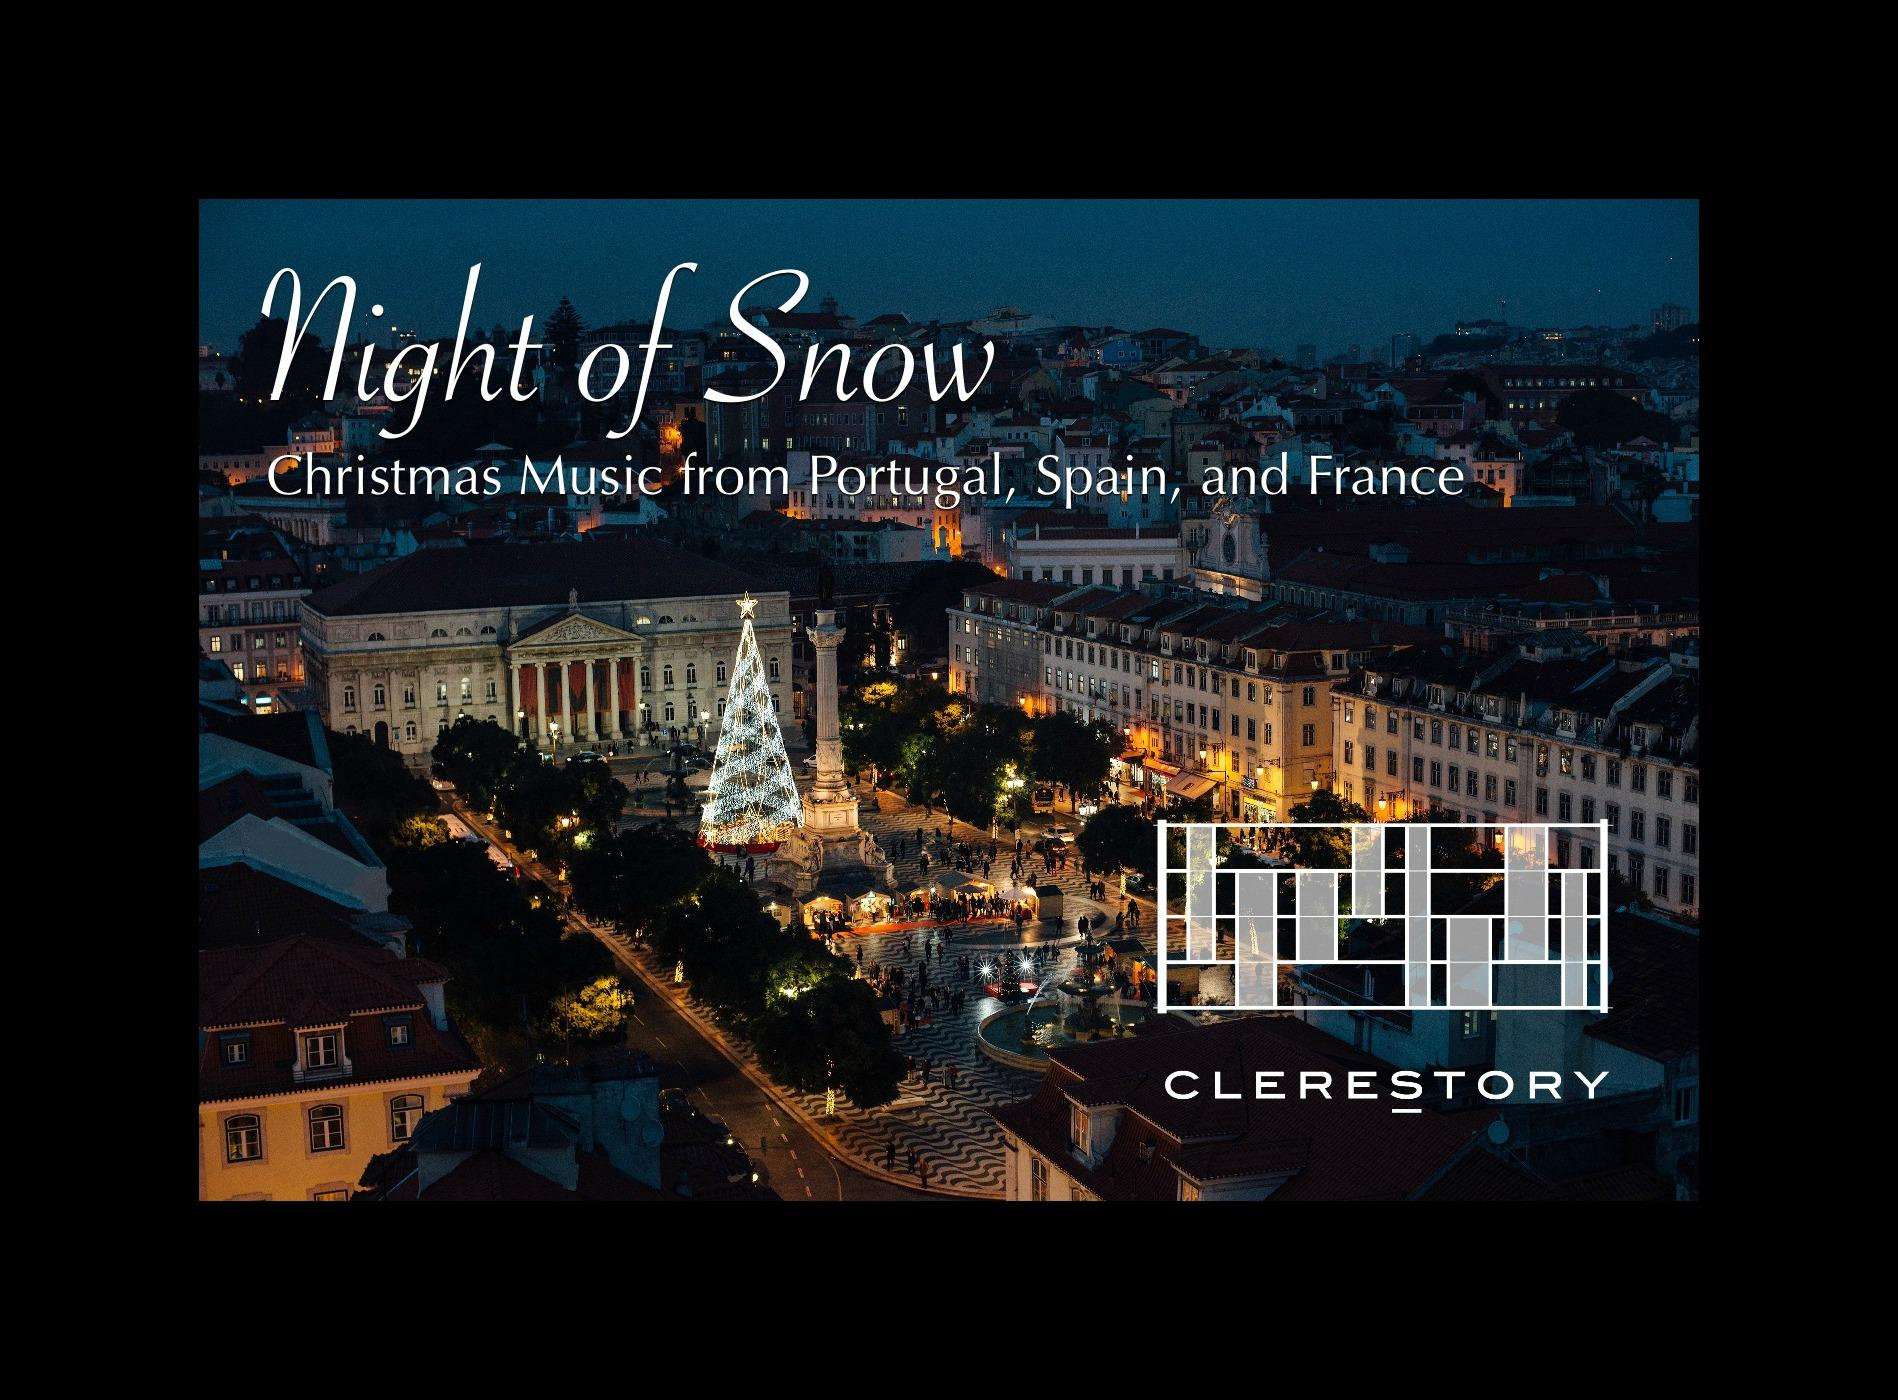 Night of Snow - Christmas Music from Portugal